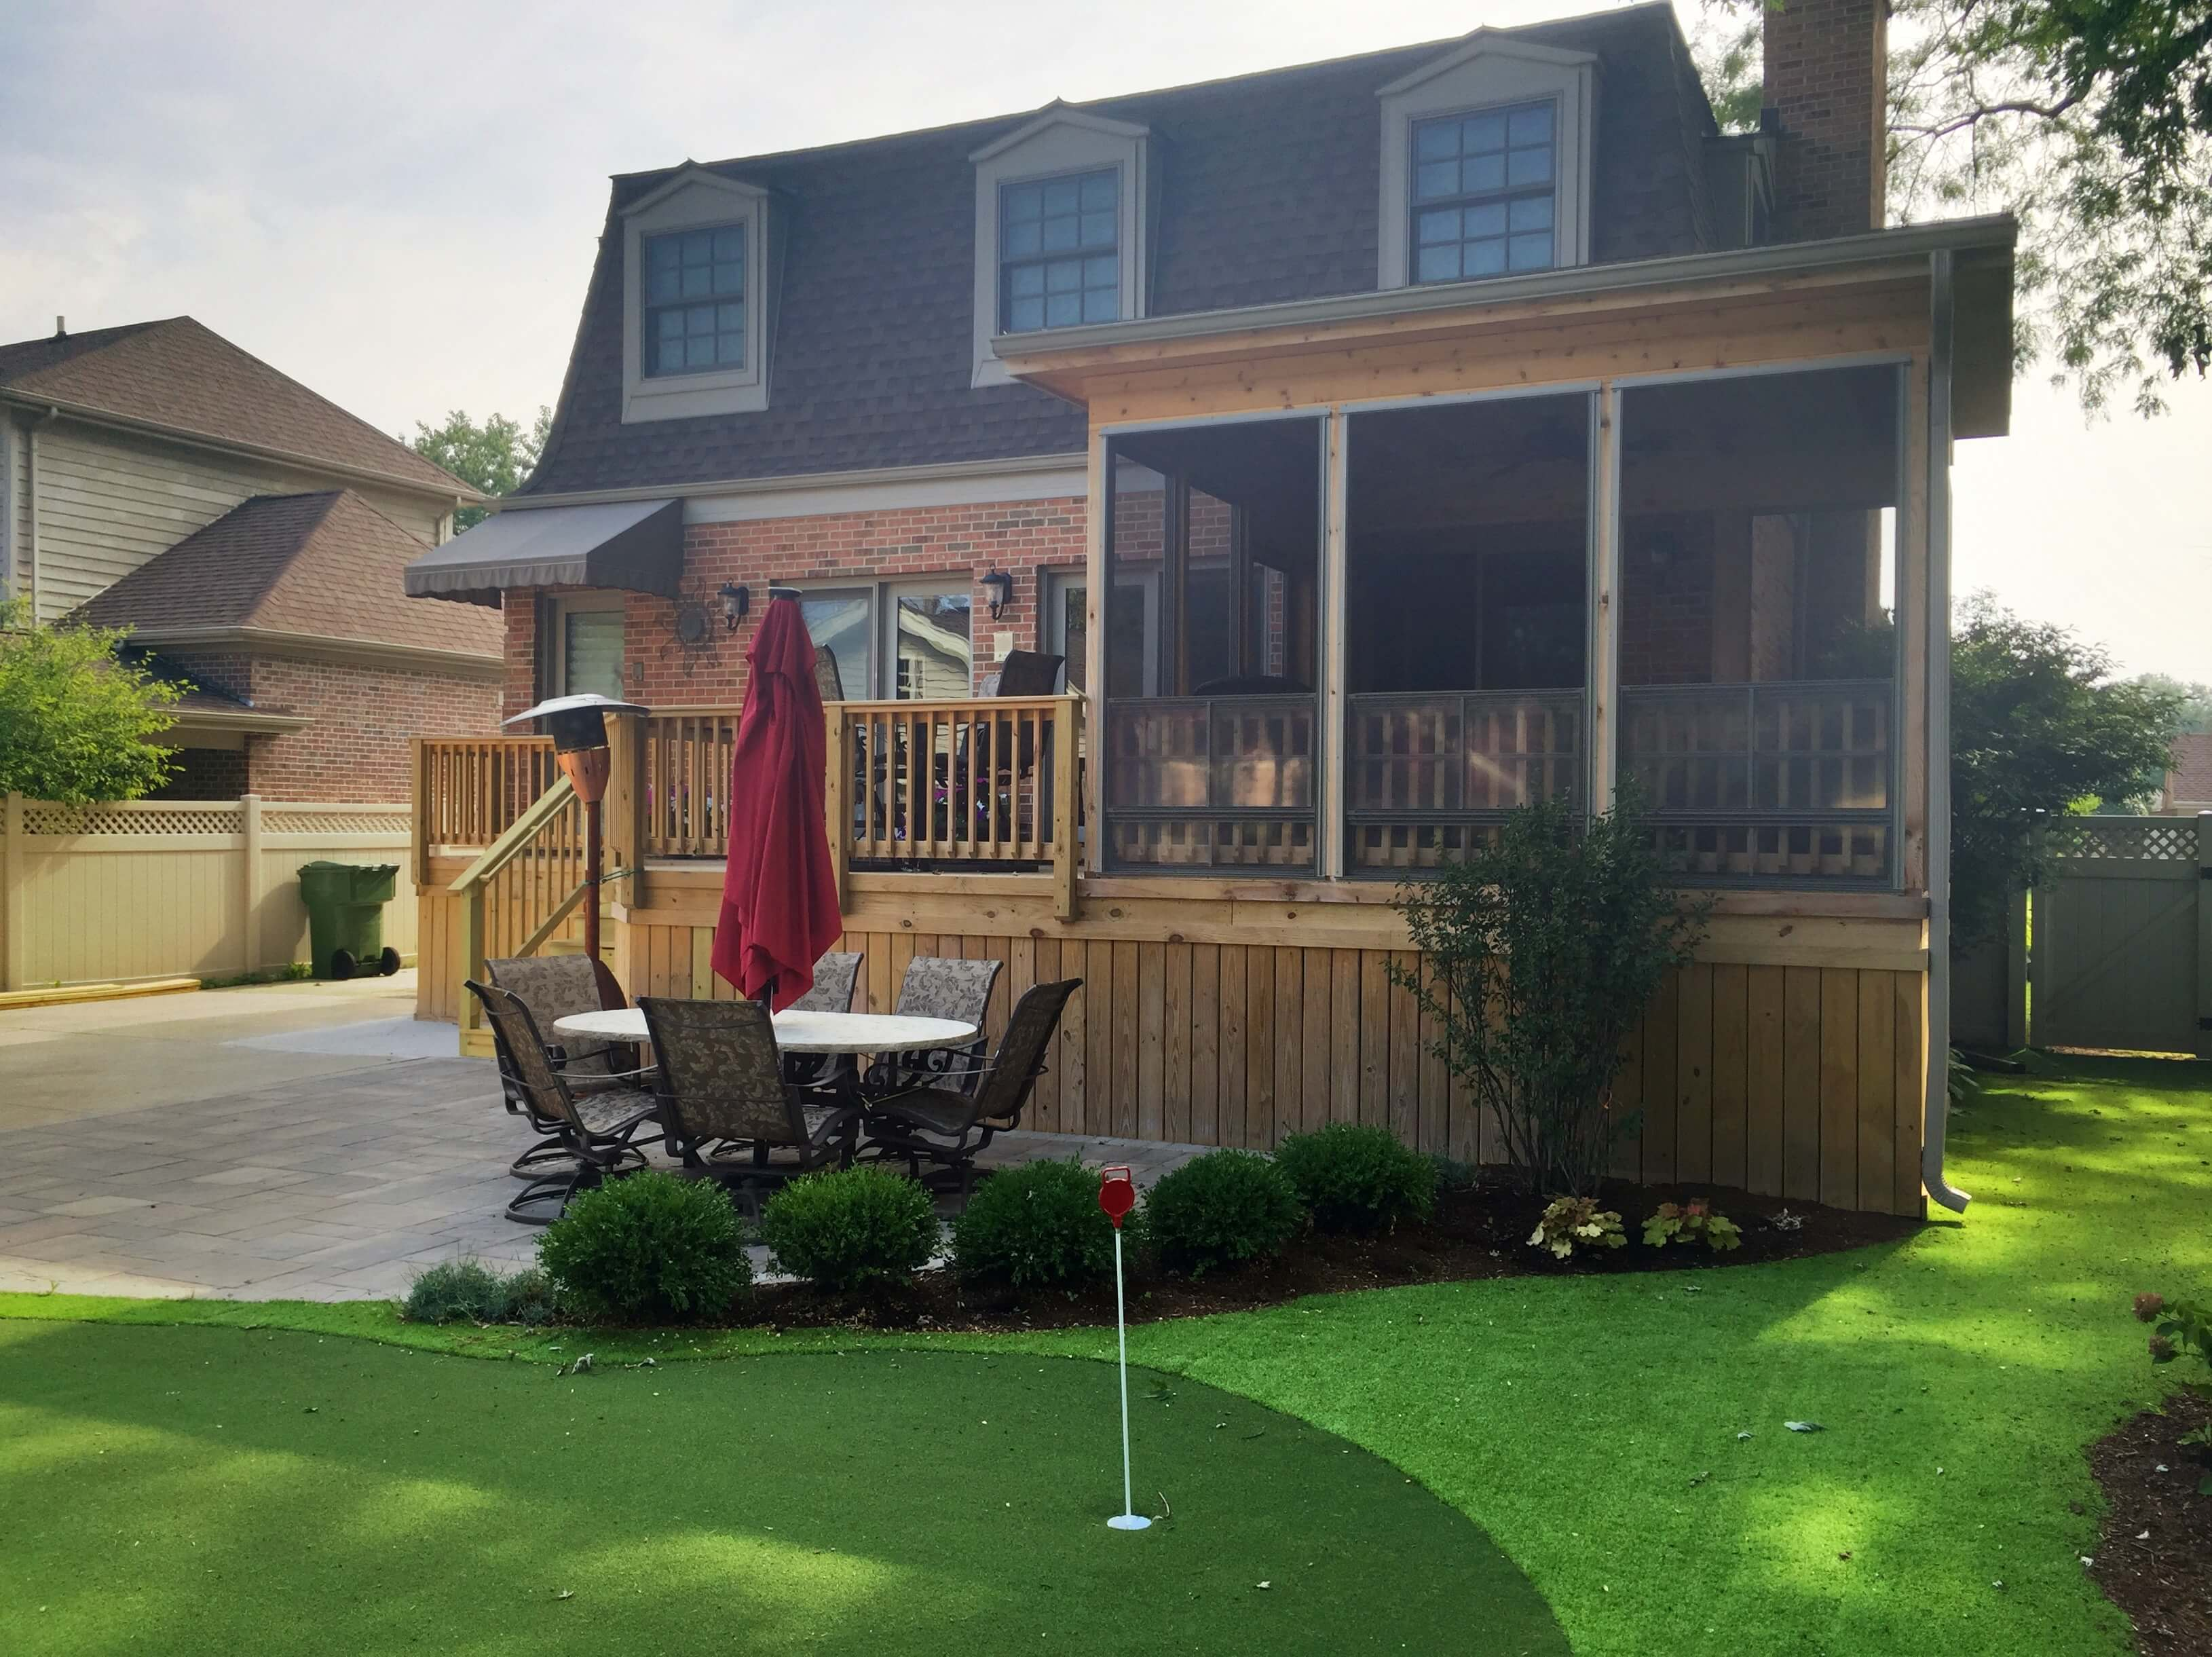 Back yard porch with mini golfing area